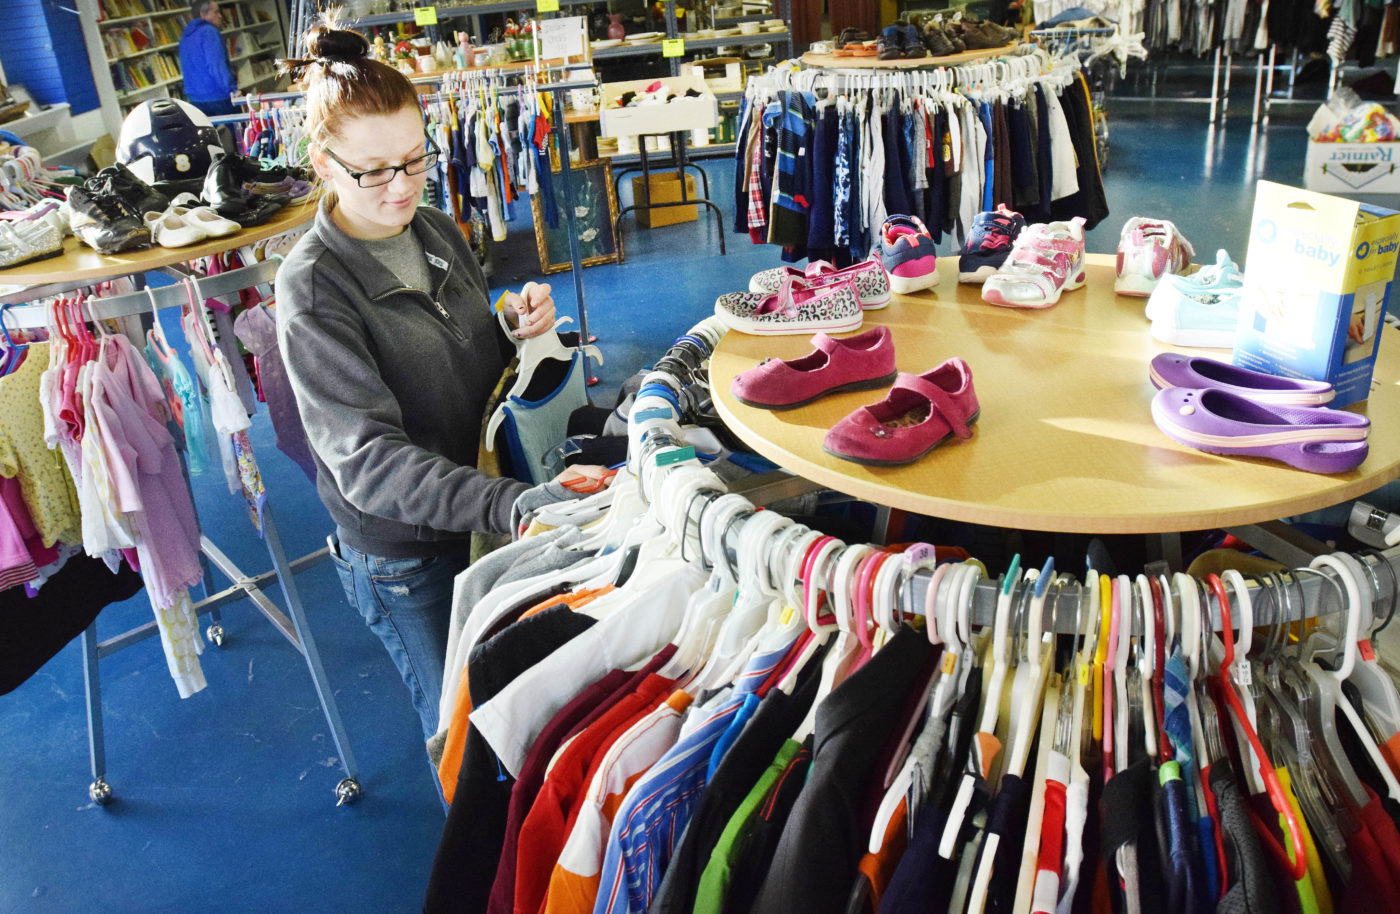 Proper Donation Drop Off Is Essential For Area Thrift